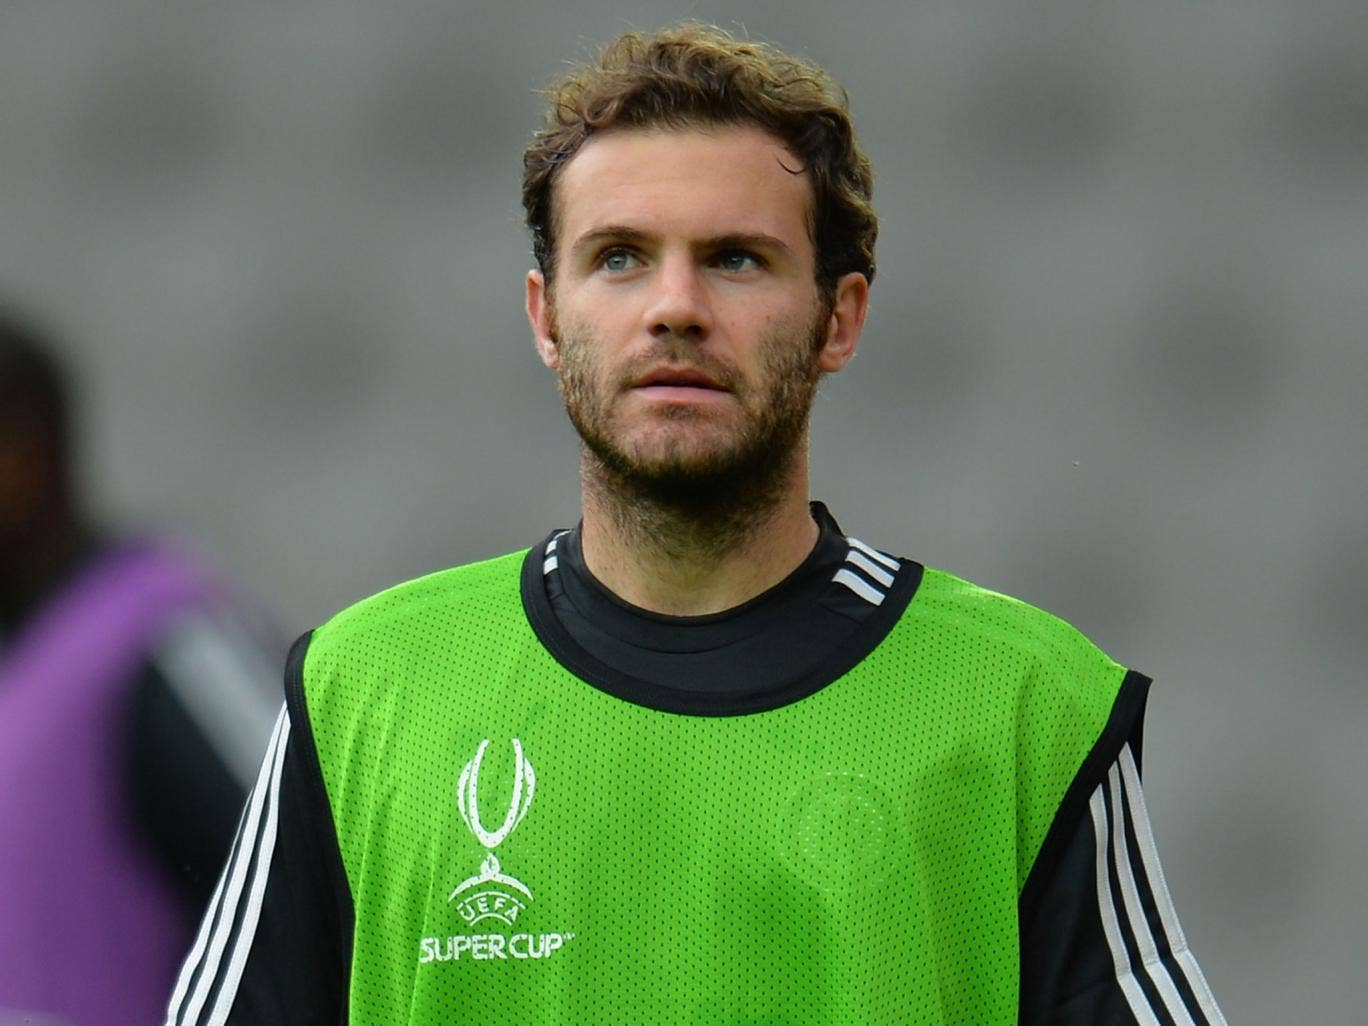 Juan Mata could be set for a rare Chelsea start against Arsenal